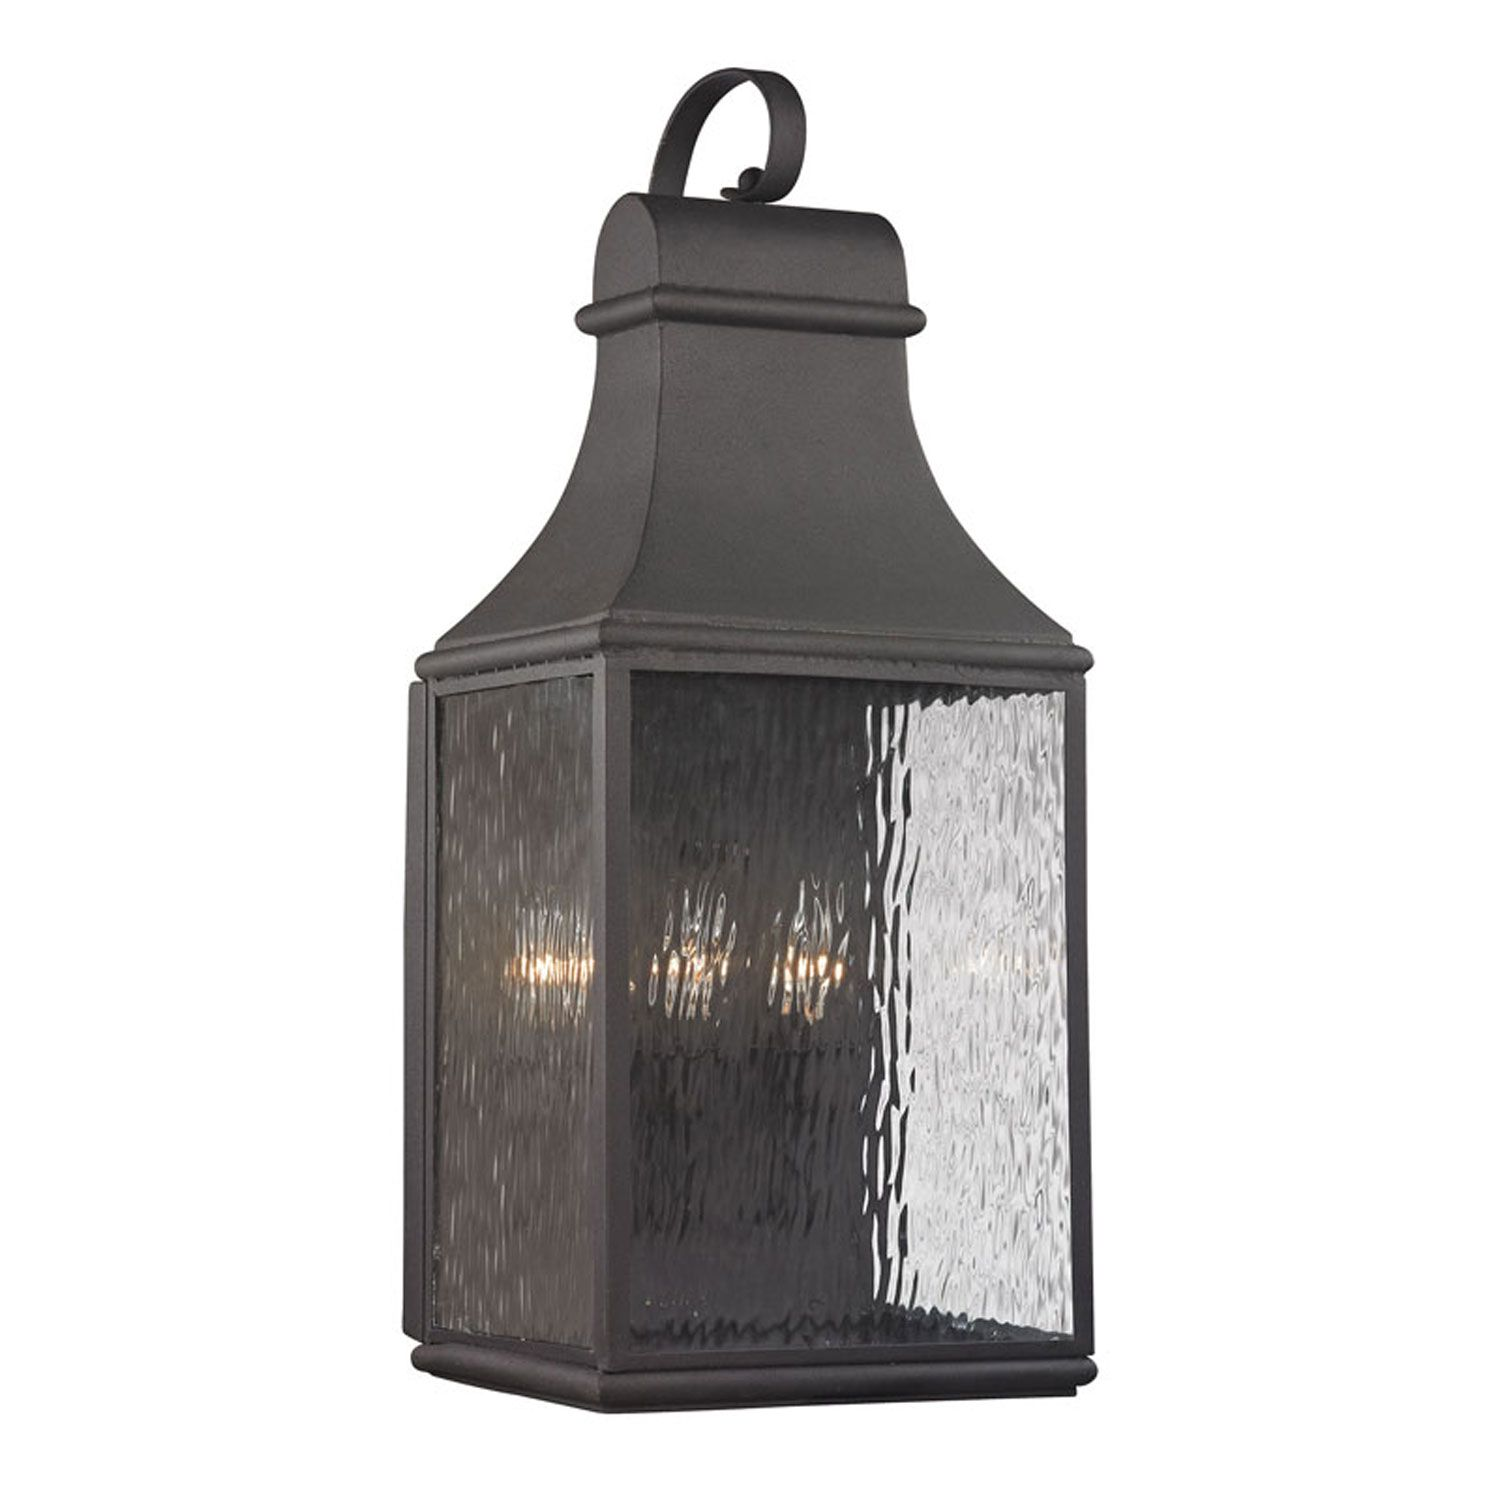 Elk lighting forged jefferson charcoal 27 inch three light outdoor elk lighting forged jefferson charcoal 27 inch three light outdoor wall sconce amipublicfo Image collections